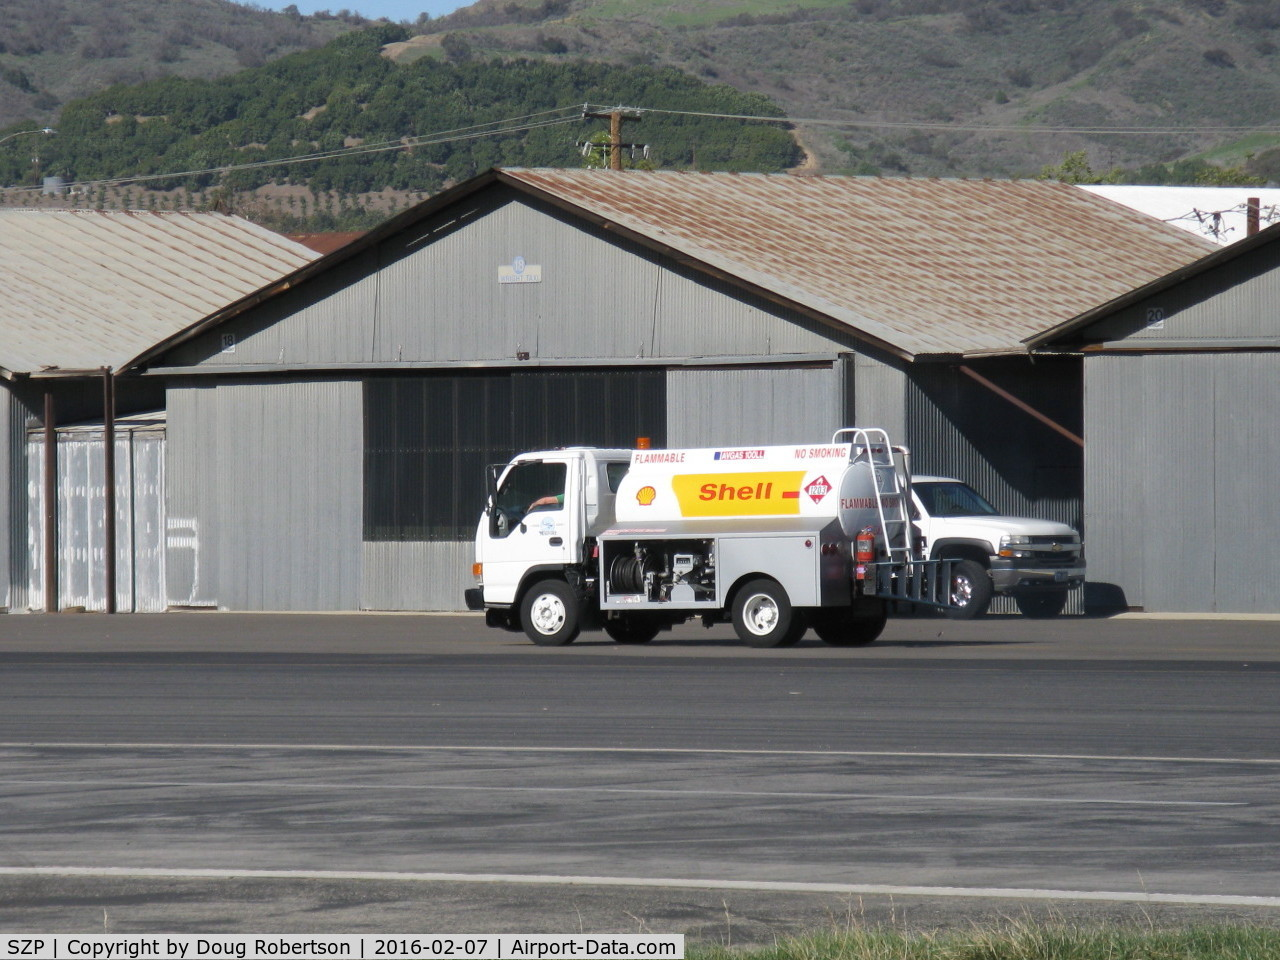 Santa Paula Airport (SZP) - On call to refuel a based helicopter remotely away from SZP's Fuel Dock